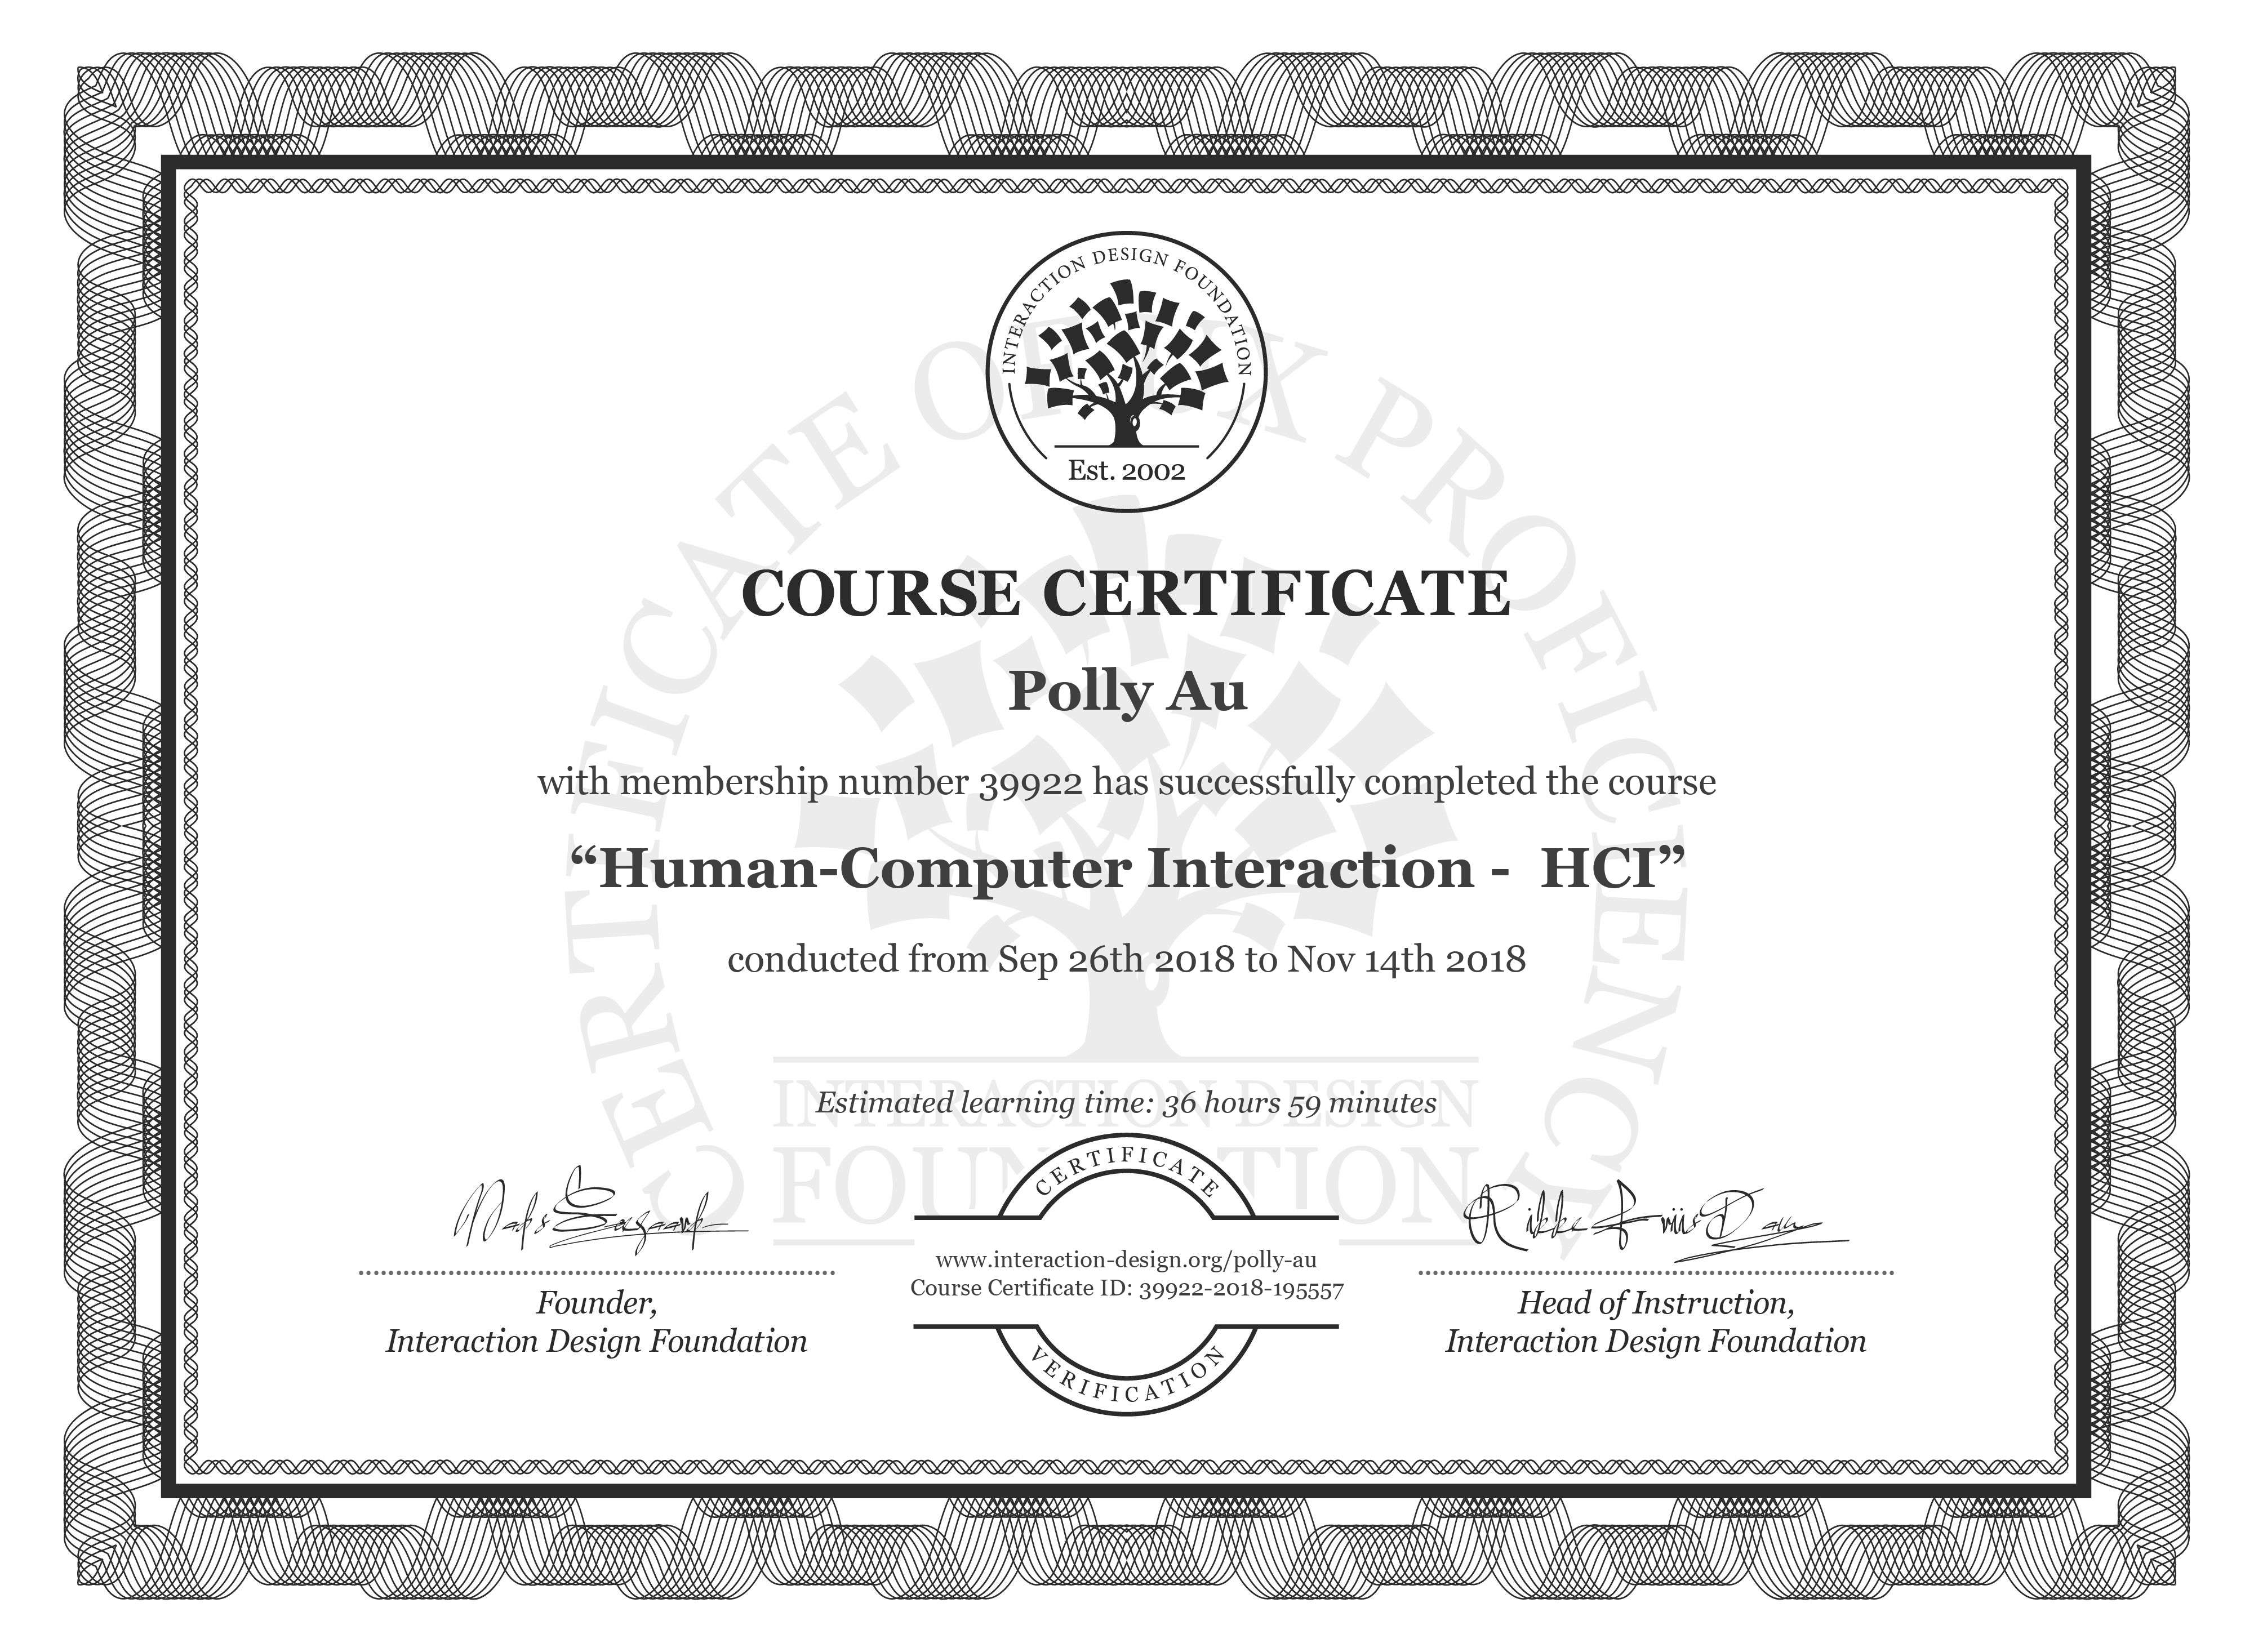 Polly Au's Course Certificate: Human-Computer Interaction -  HCI